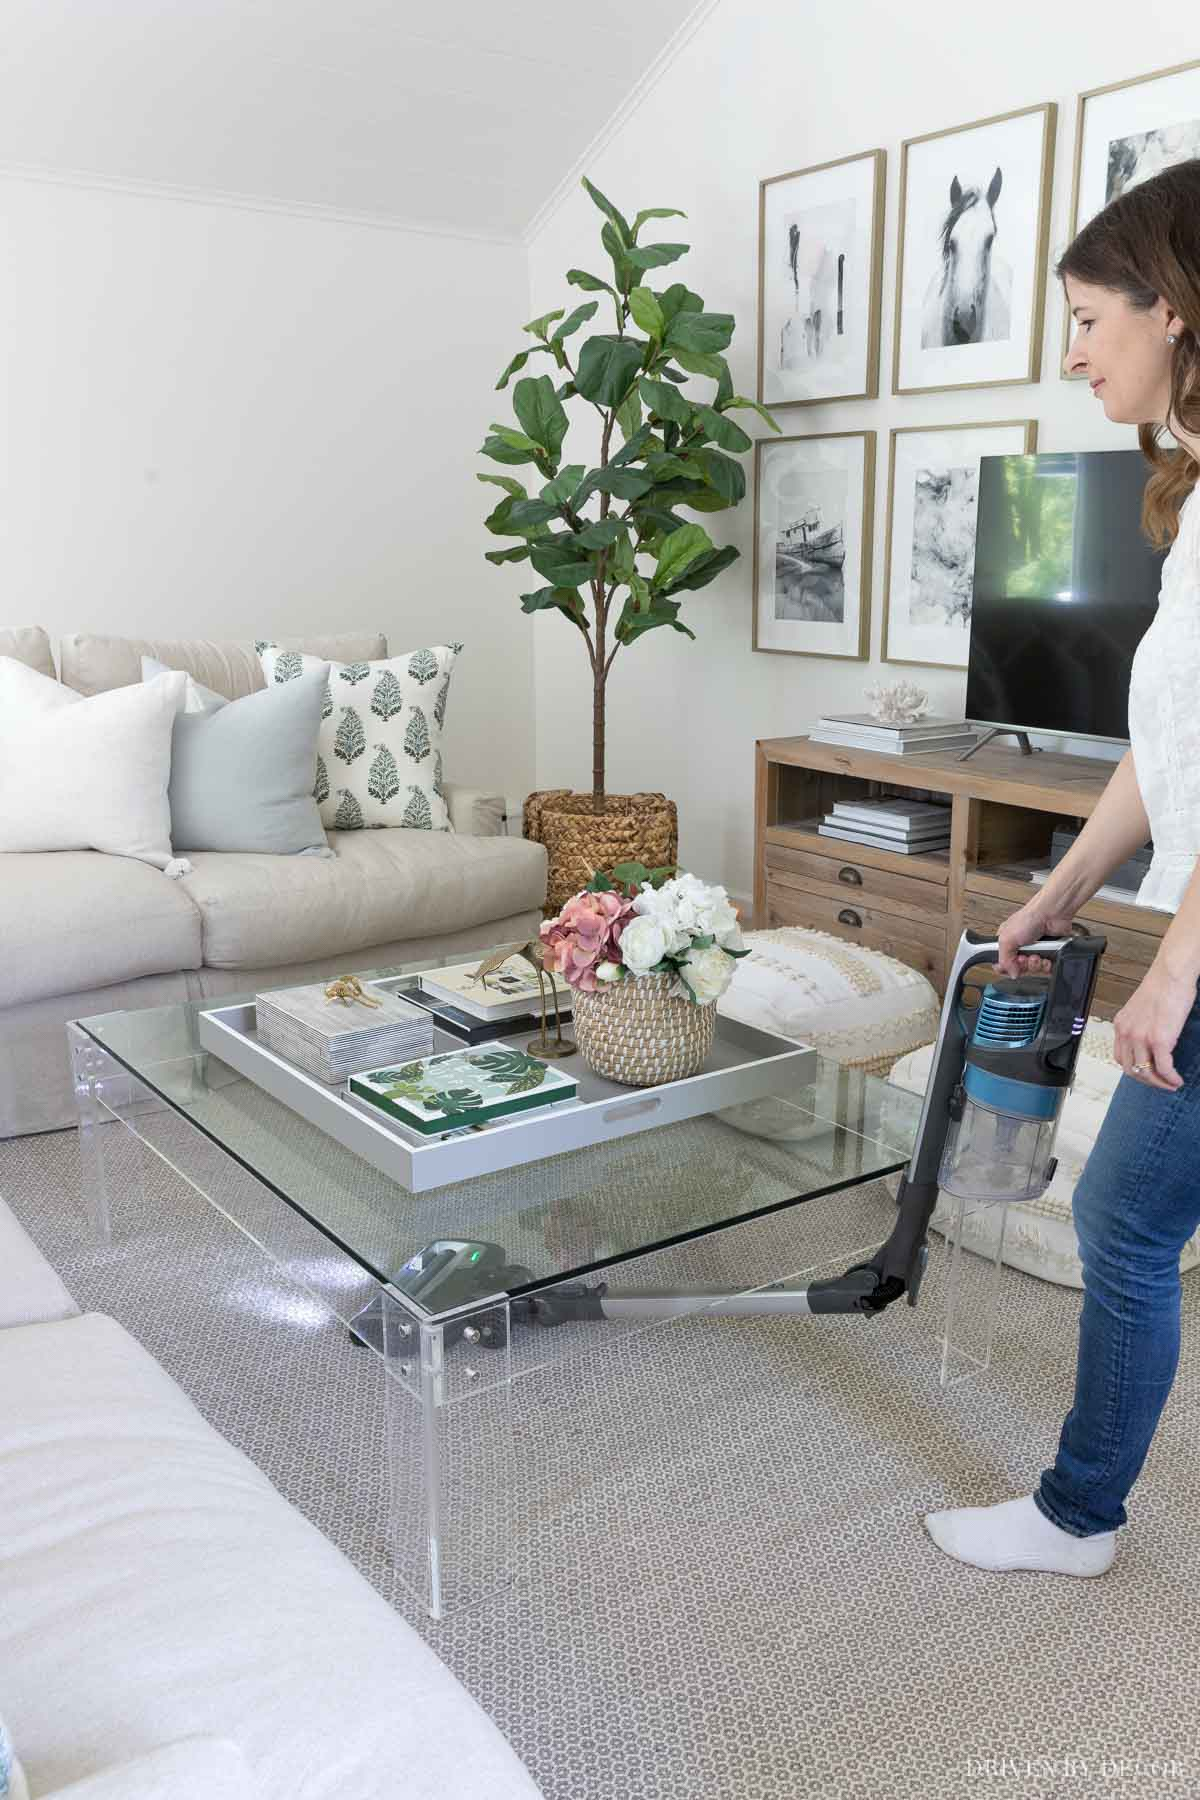 This feature of Shark cordless vacuums makes it a breeze to clean under things!